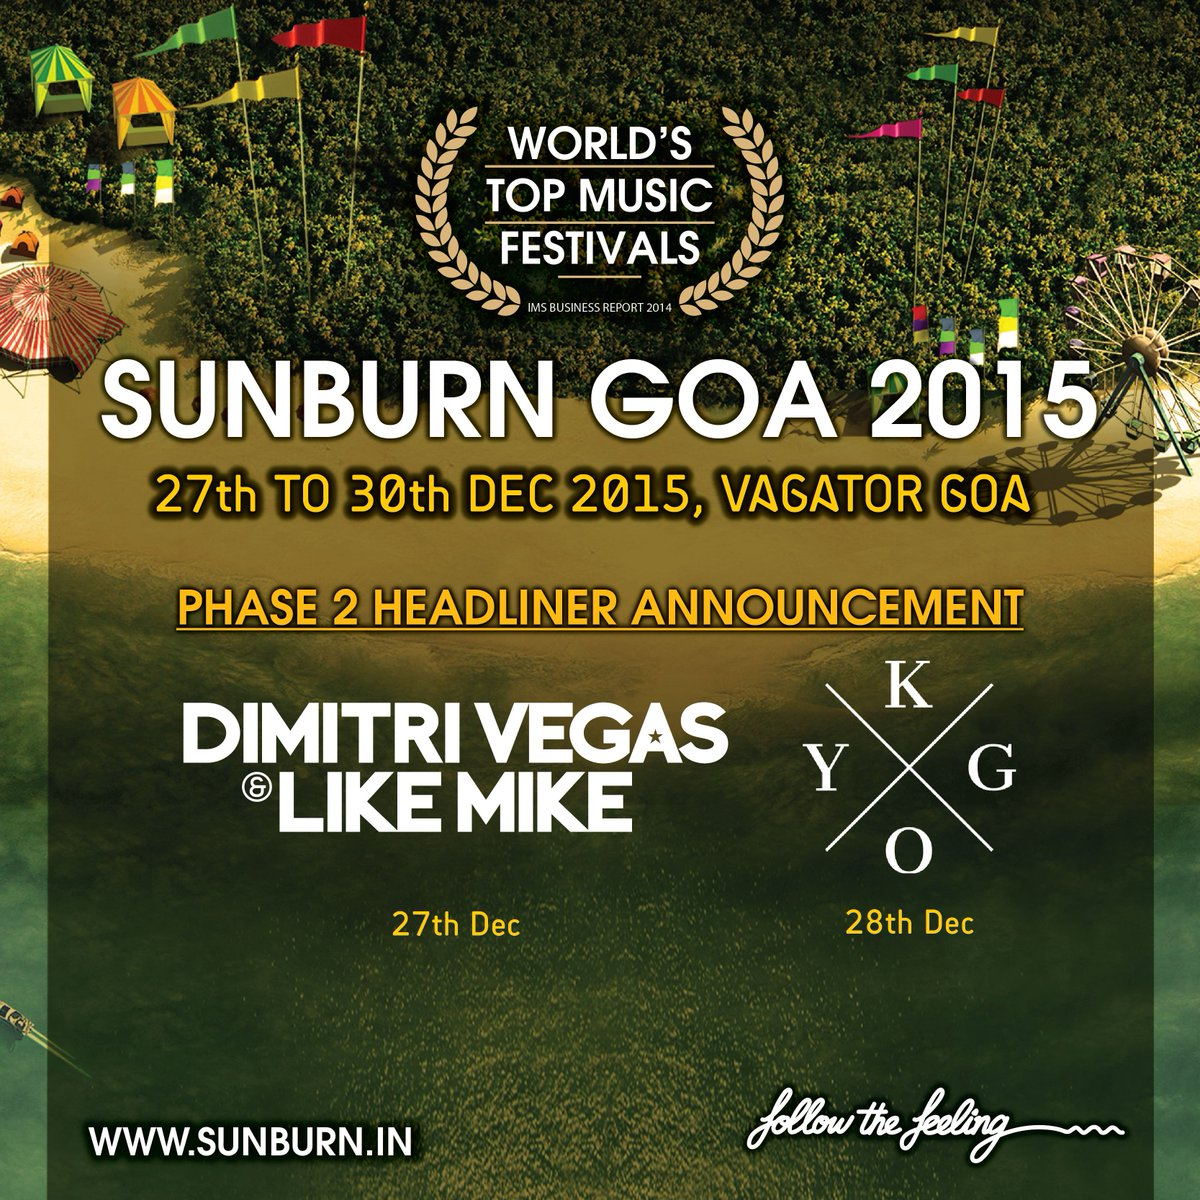 We are bringing Worlds #1 @dimitrivegas @likemike & @KygoMusic to #SunburnGoa alongwith @davidguetta & @MartinGarrix https://t.co/gRRtpNwi9W